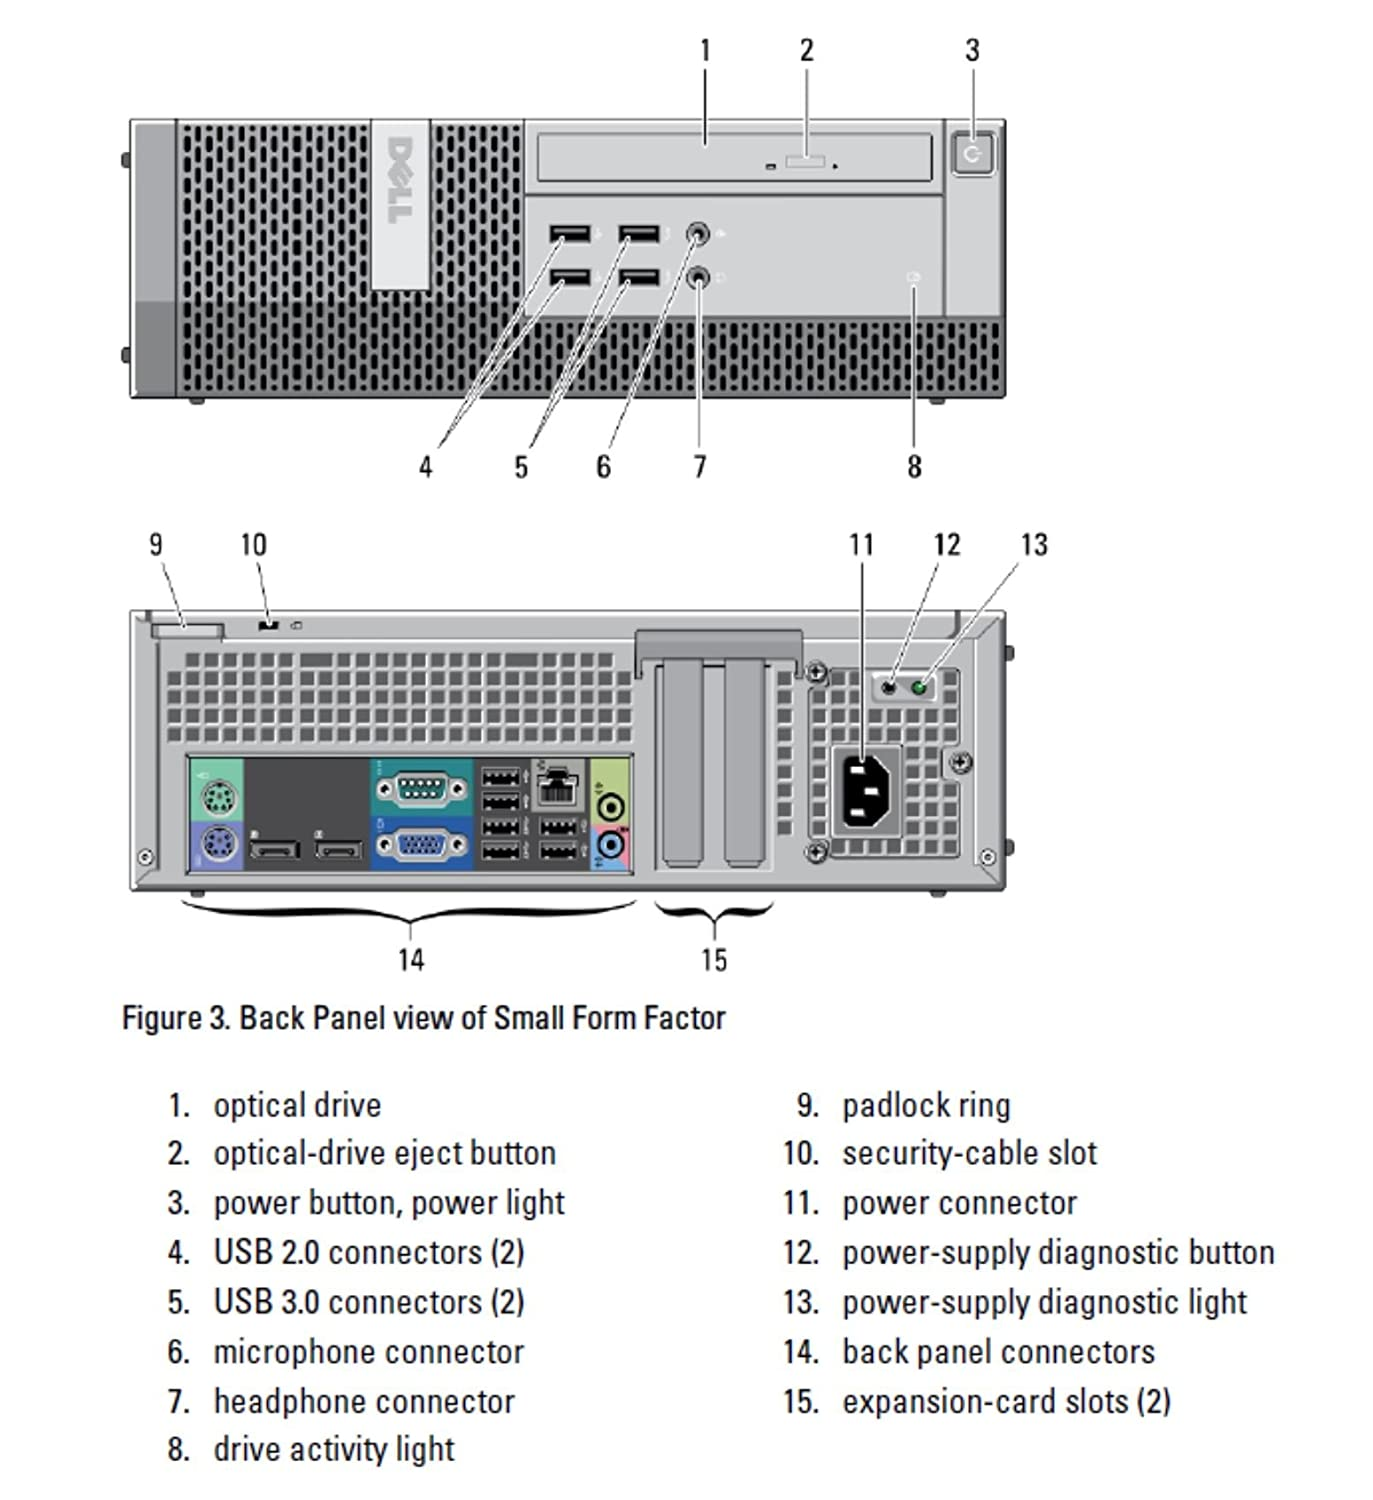 Dell Studio 1 1909 Power Supplu Connectro Wire Diagram likewise 24 Pin Psu Cable Wiring Diagram additionally Dell Optiplex 9020 Features Wiring Diagrams further Small  puter Motherboard Wiring Diagram in addition  on optiplex 7020 motherboard diagram wiring diagrams